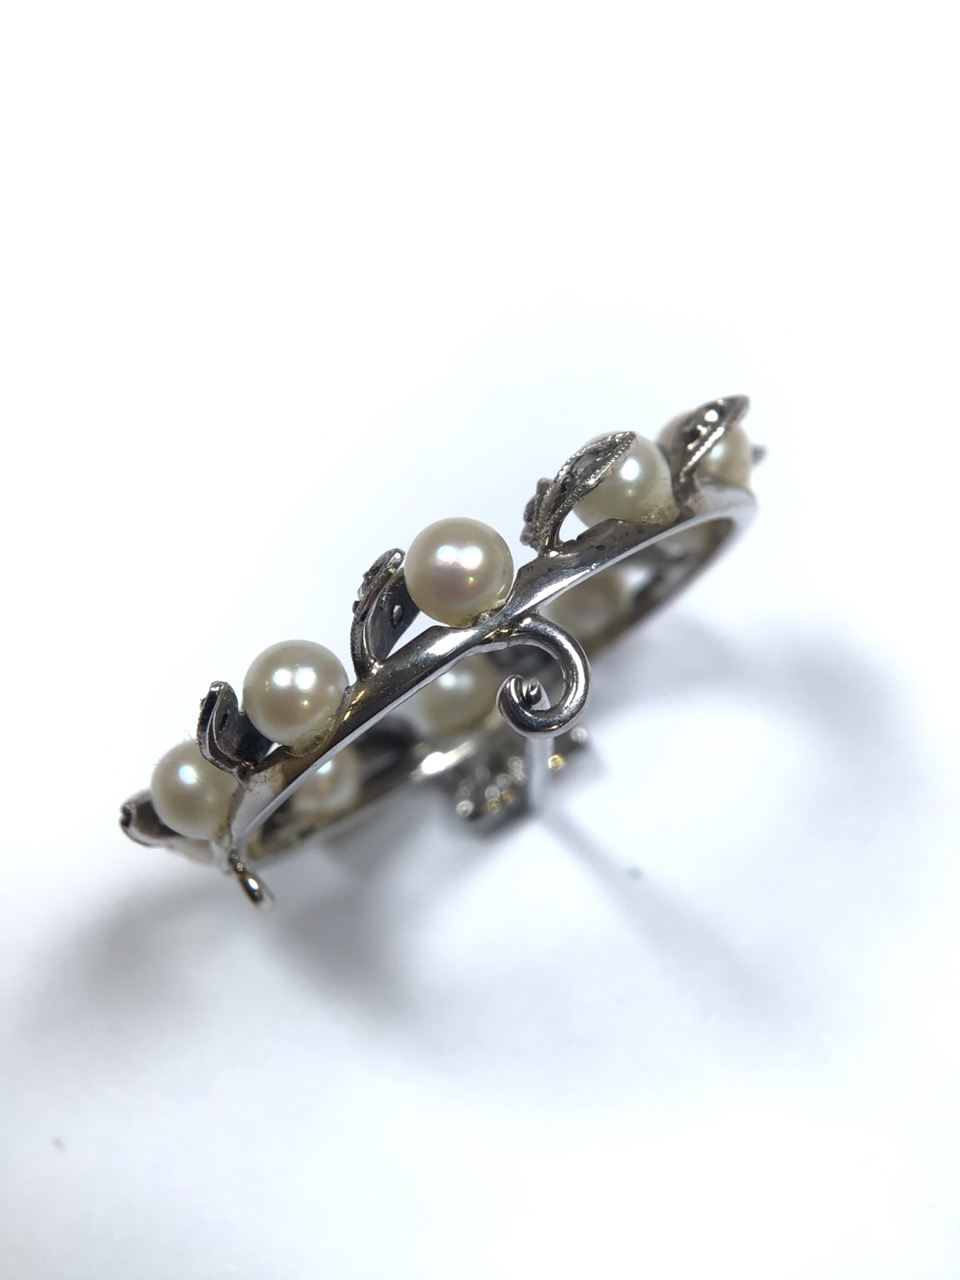 An unmarked precious white metal Belle Époque wreath brooch set with a surround of pearls and - Image 6 of 7